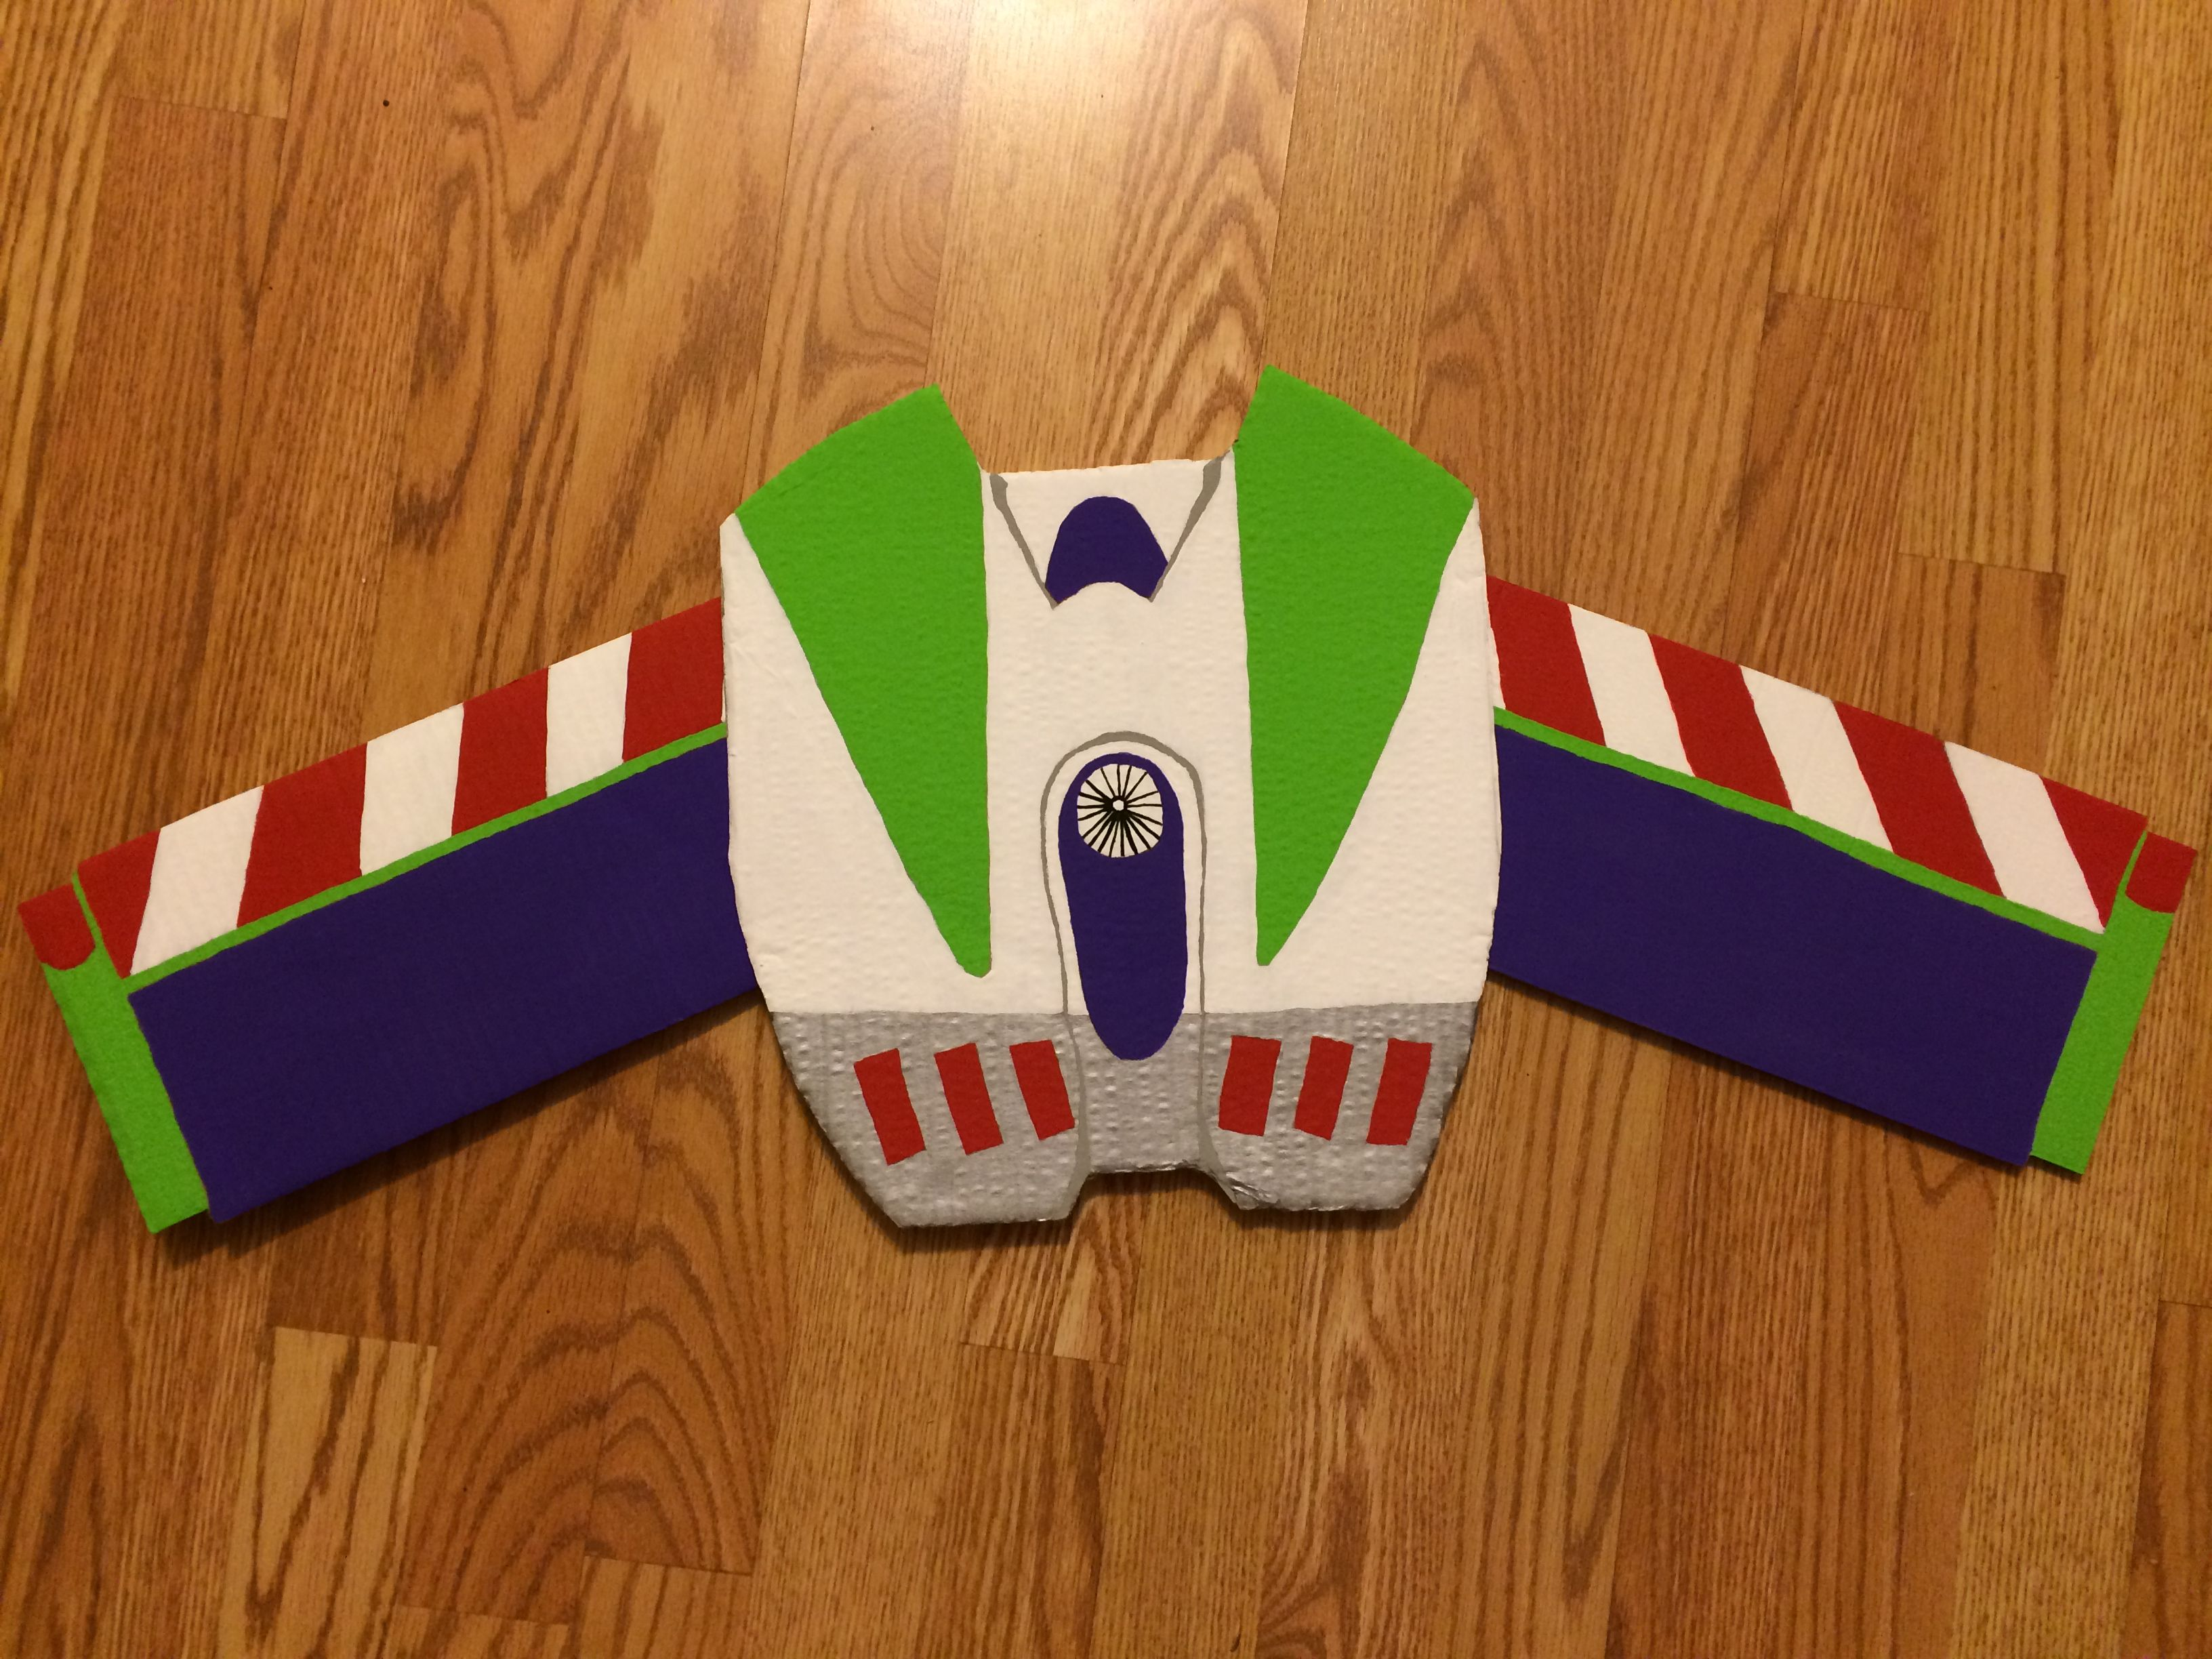 Homemade buzz lightyear wings only requires cardboard box and homemade buzz lightyear wings only requires cardboard box and acrylic paint glued cardboard pronofoot35fo Gallery